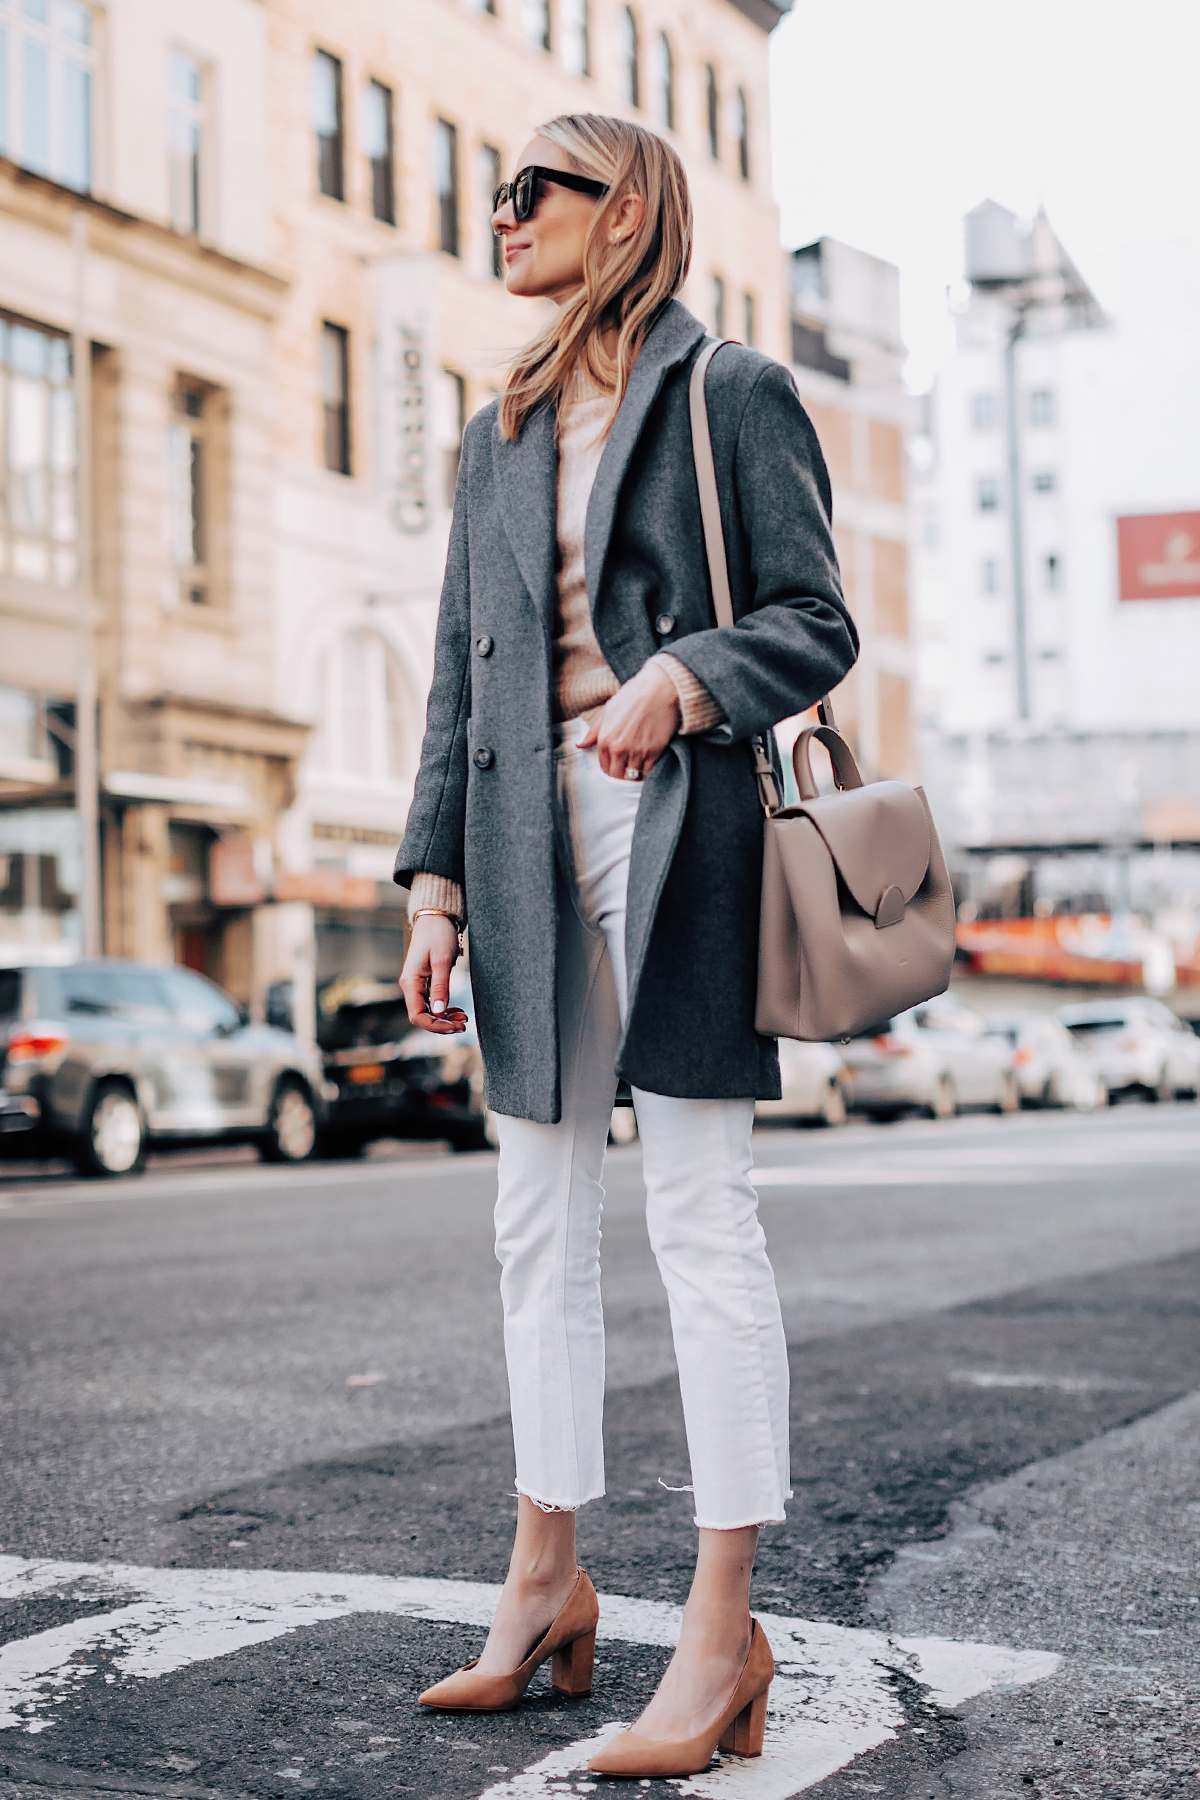 Blonde Woman Wearing HM Grey Wool Coat HM Camel Sweater Everlane White Ankle Crop Jeans Tan Pumps Polene Grey Handbag Fashion Jackson Fashion Blogger Street Style NYFW